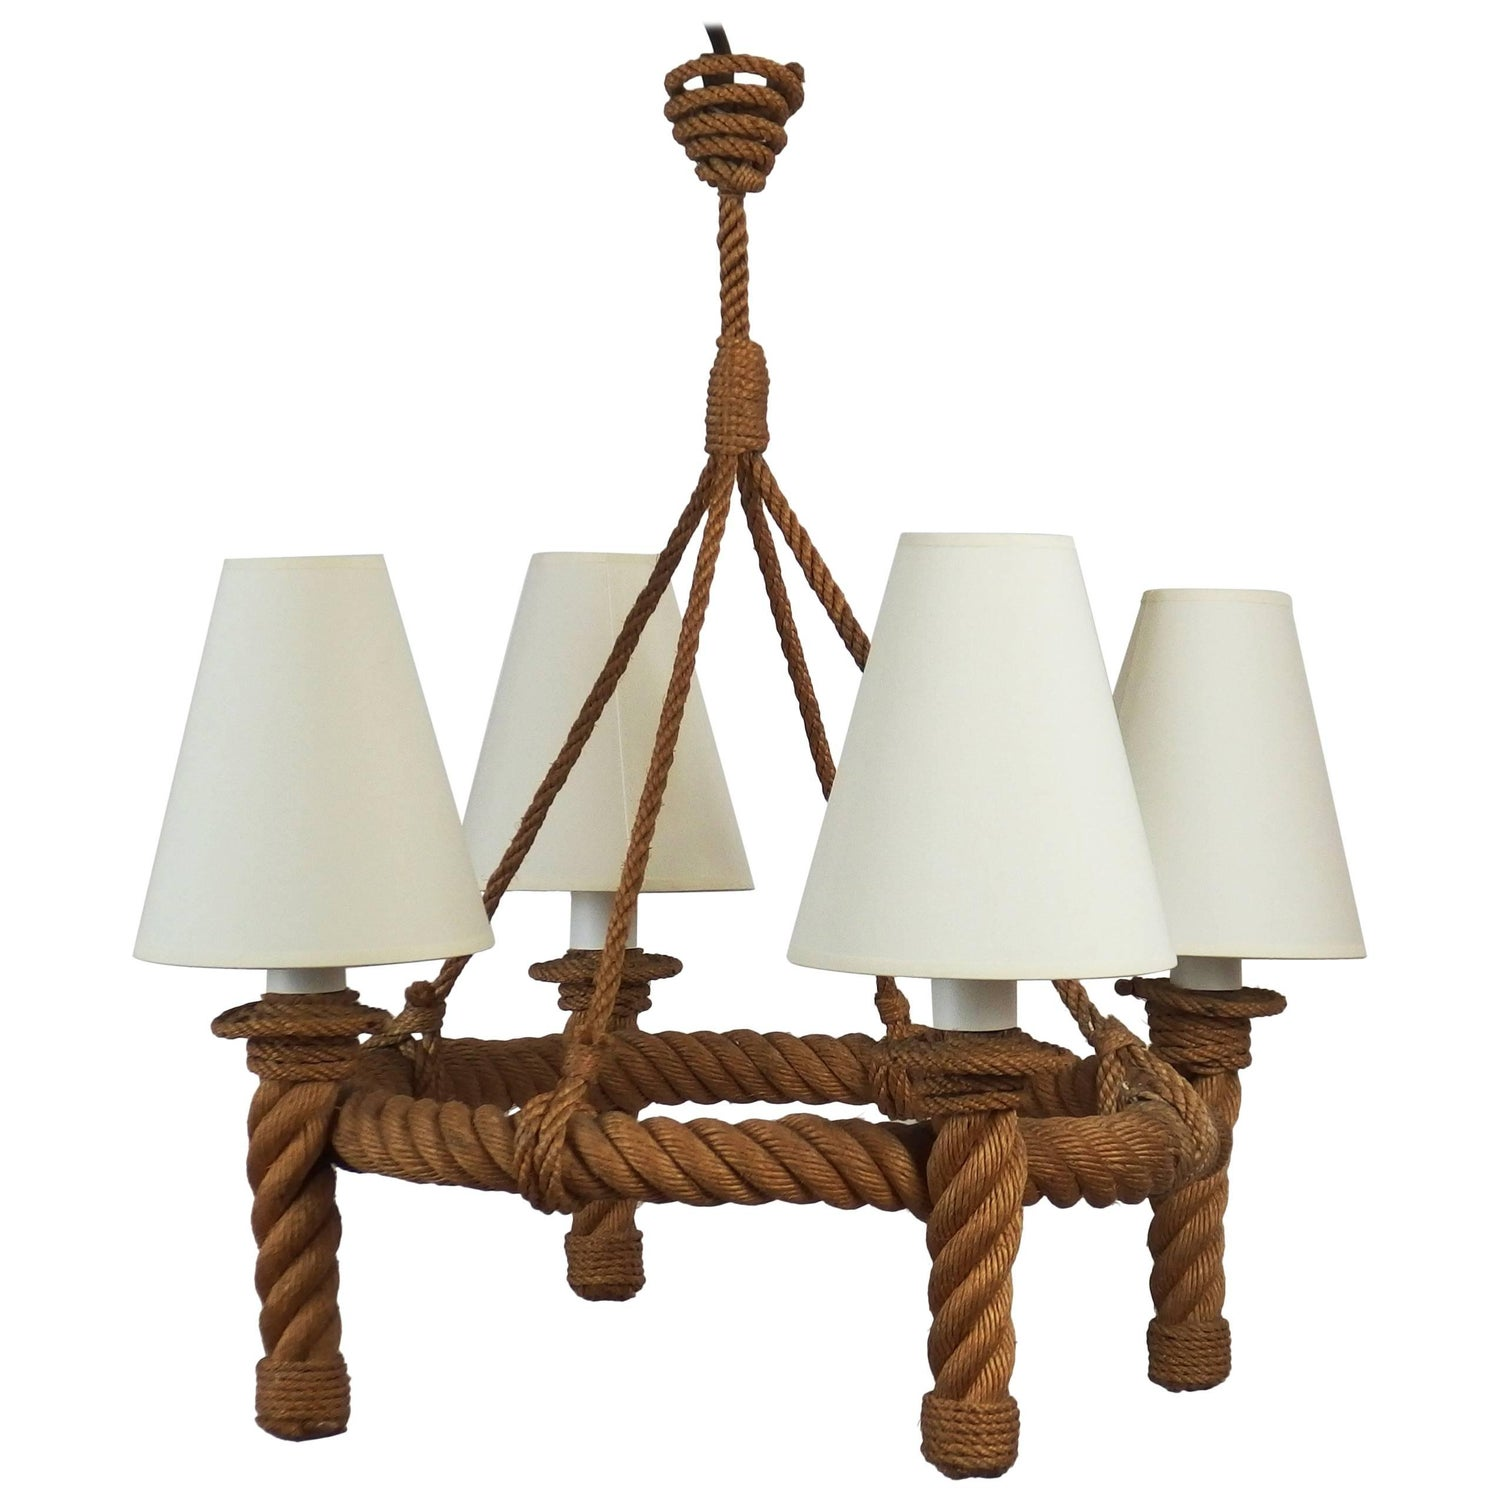 Rope chandelier by audoux minet for sale at 1stdibs arubaitofo Image collections